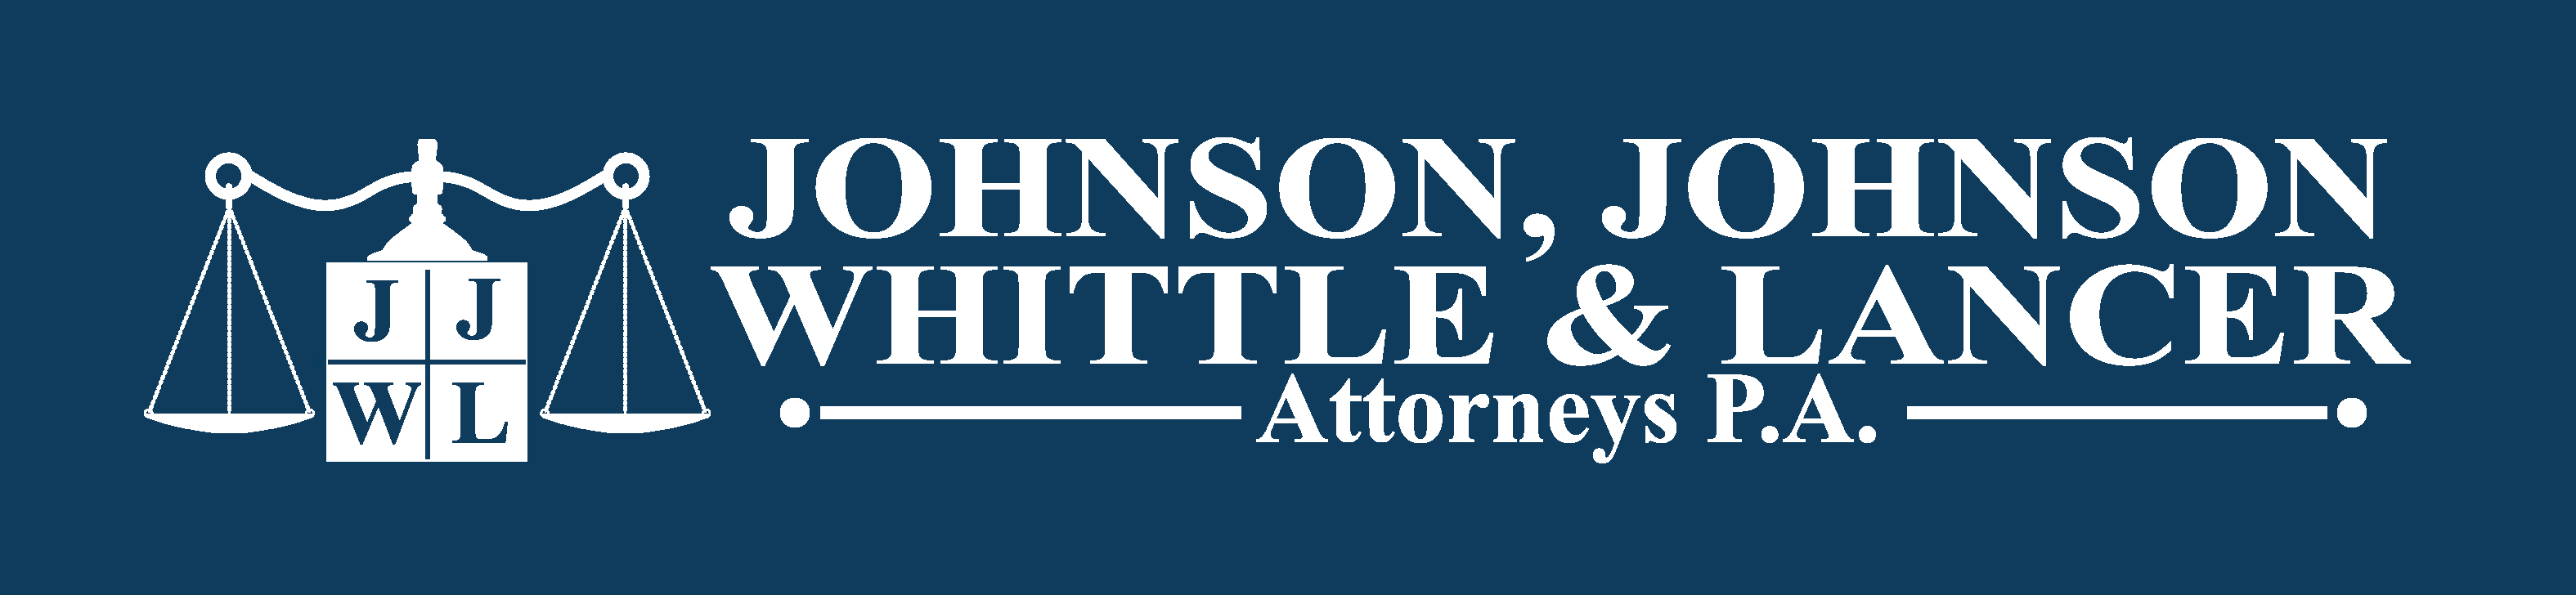 Johnson, Johnson, Whittle & Lancer, Attorneys, P.A.